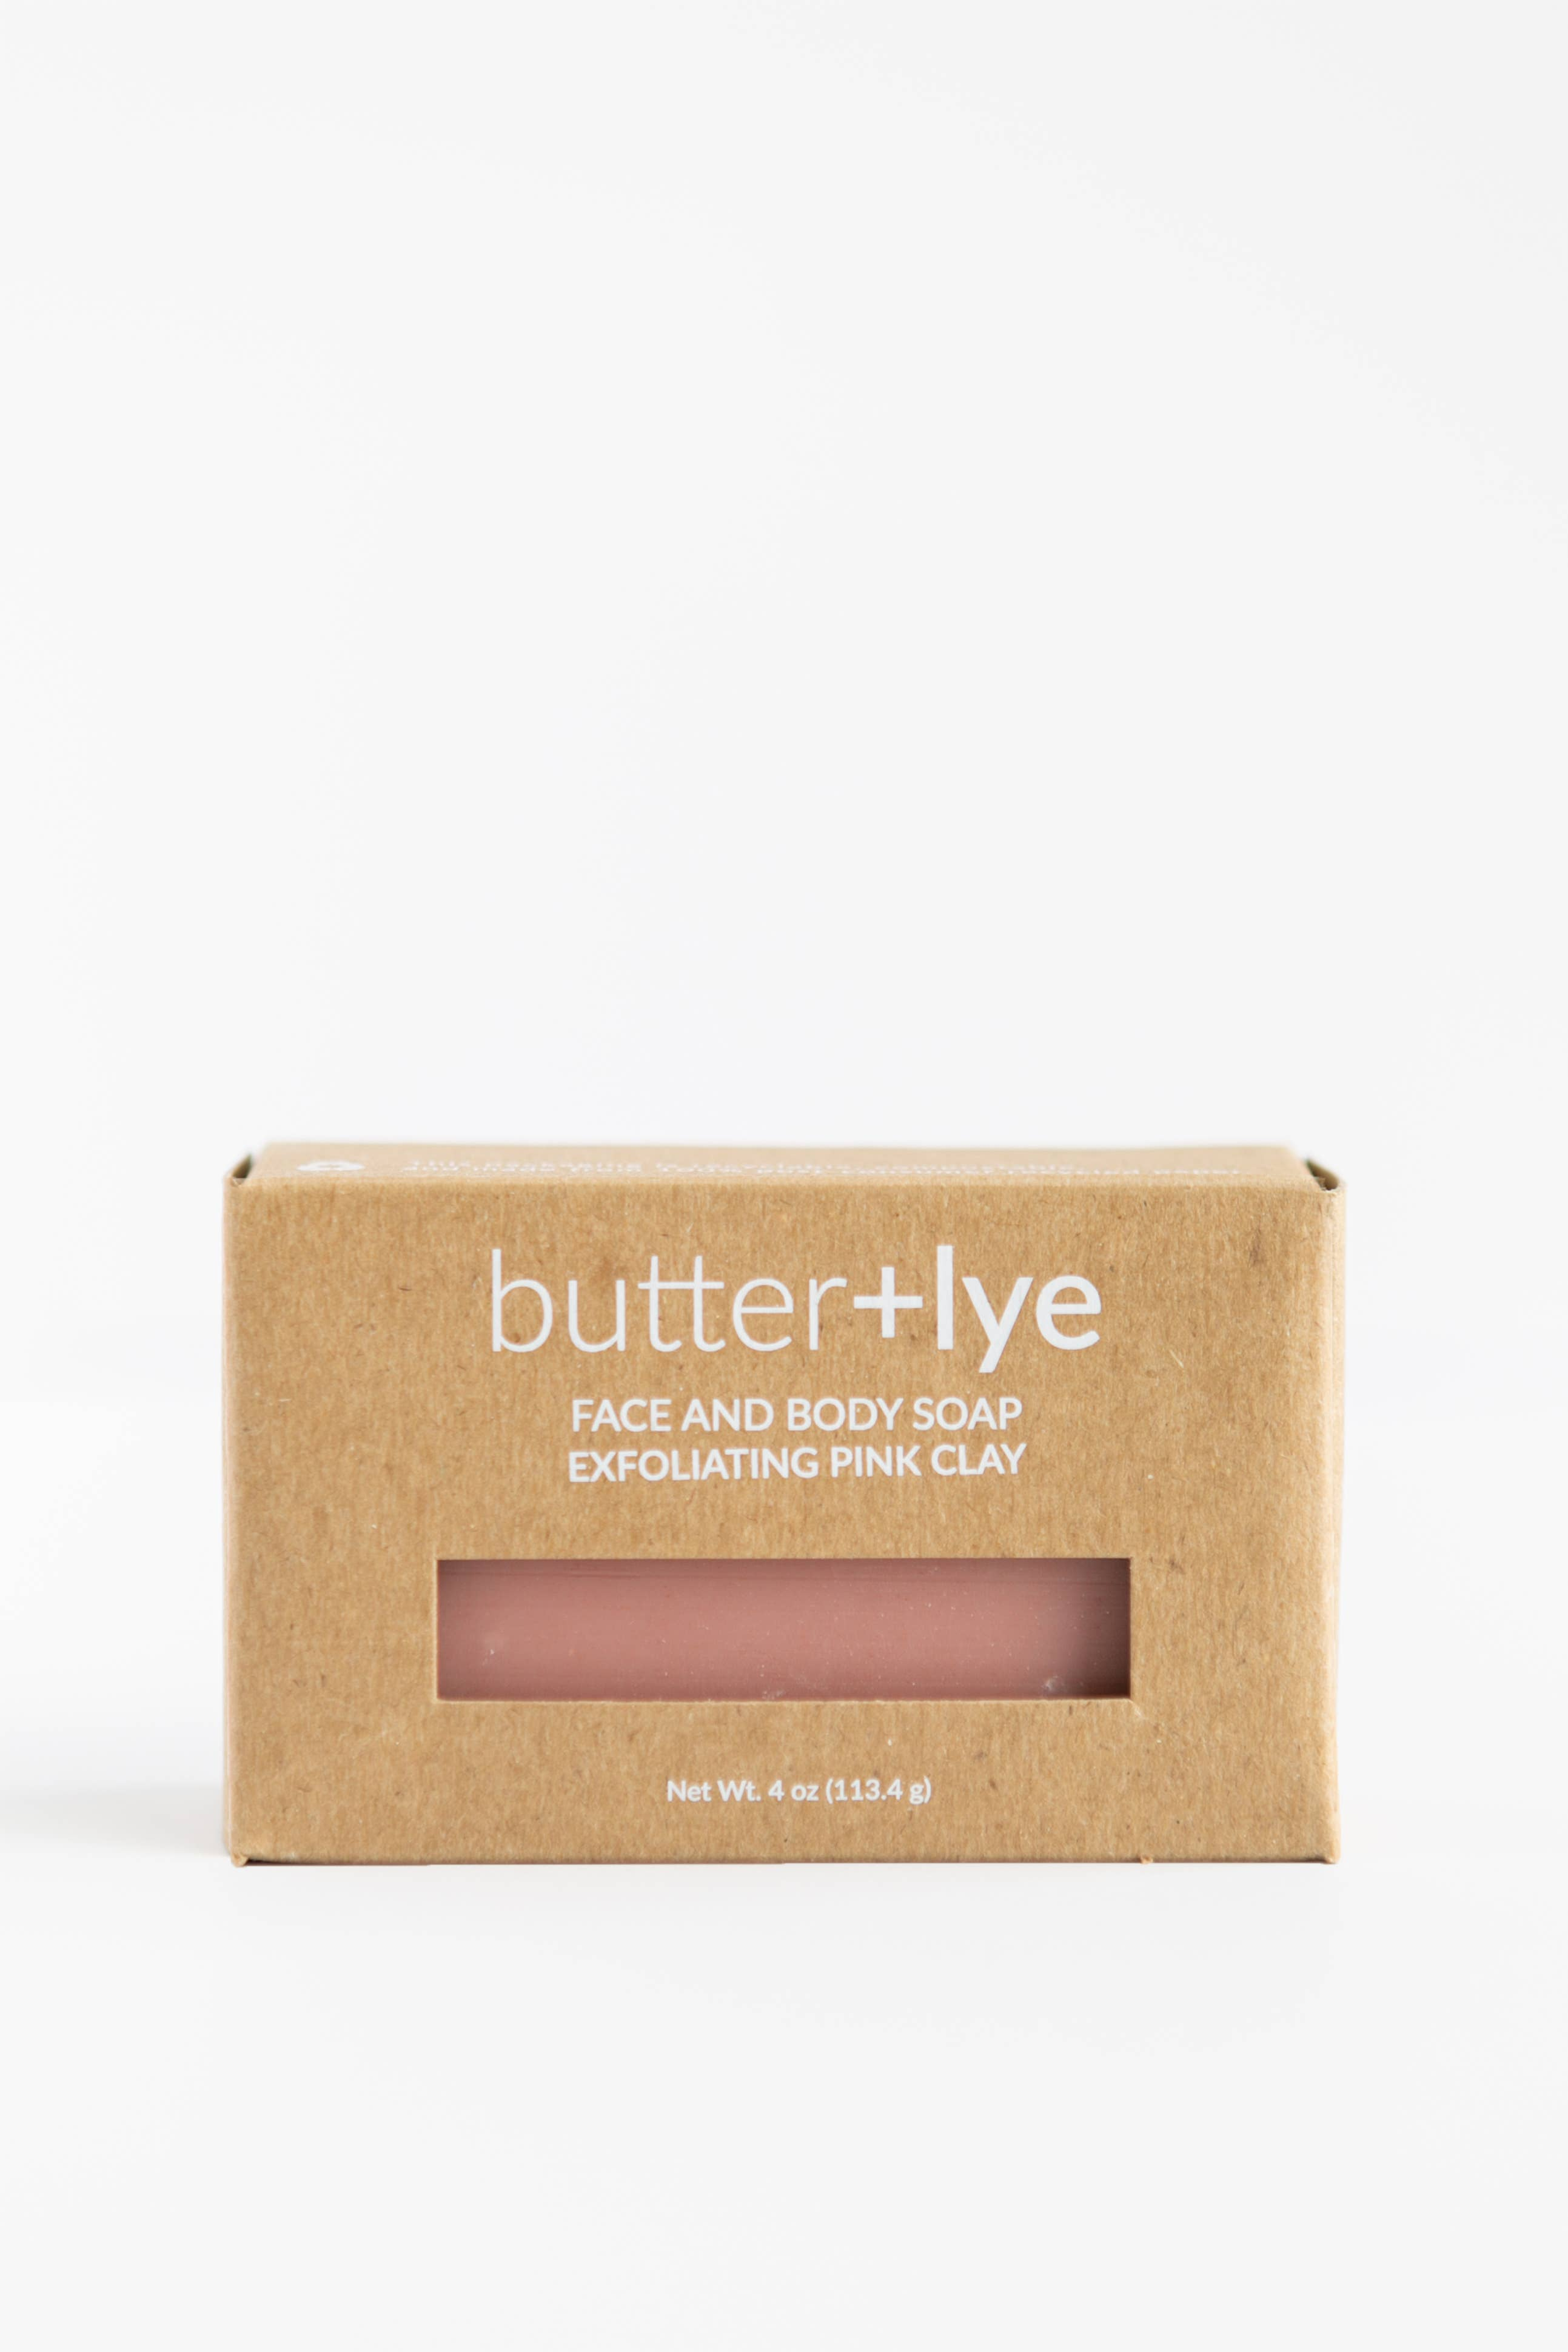 Exfoliating Pink Clay Face and Body Soap